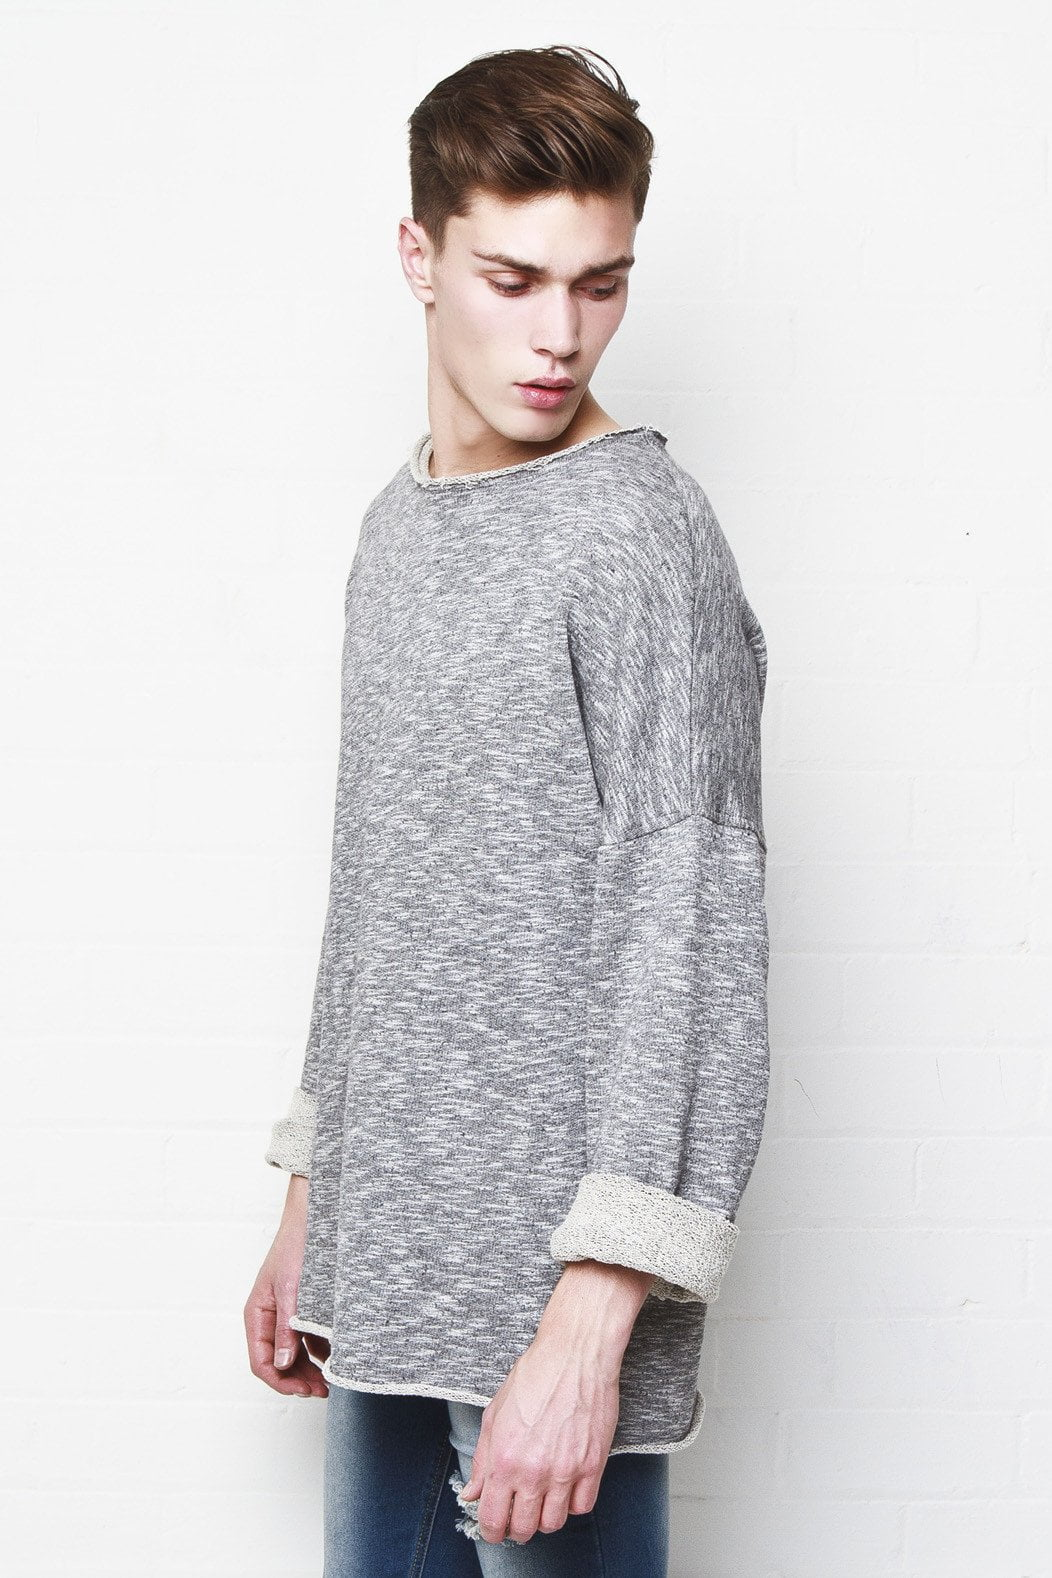 Bakerfield - Raw edge oversized sweat top in Charcoal - Liquor N Poker  Liquor N Poker